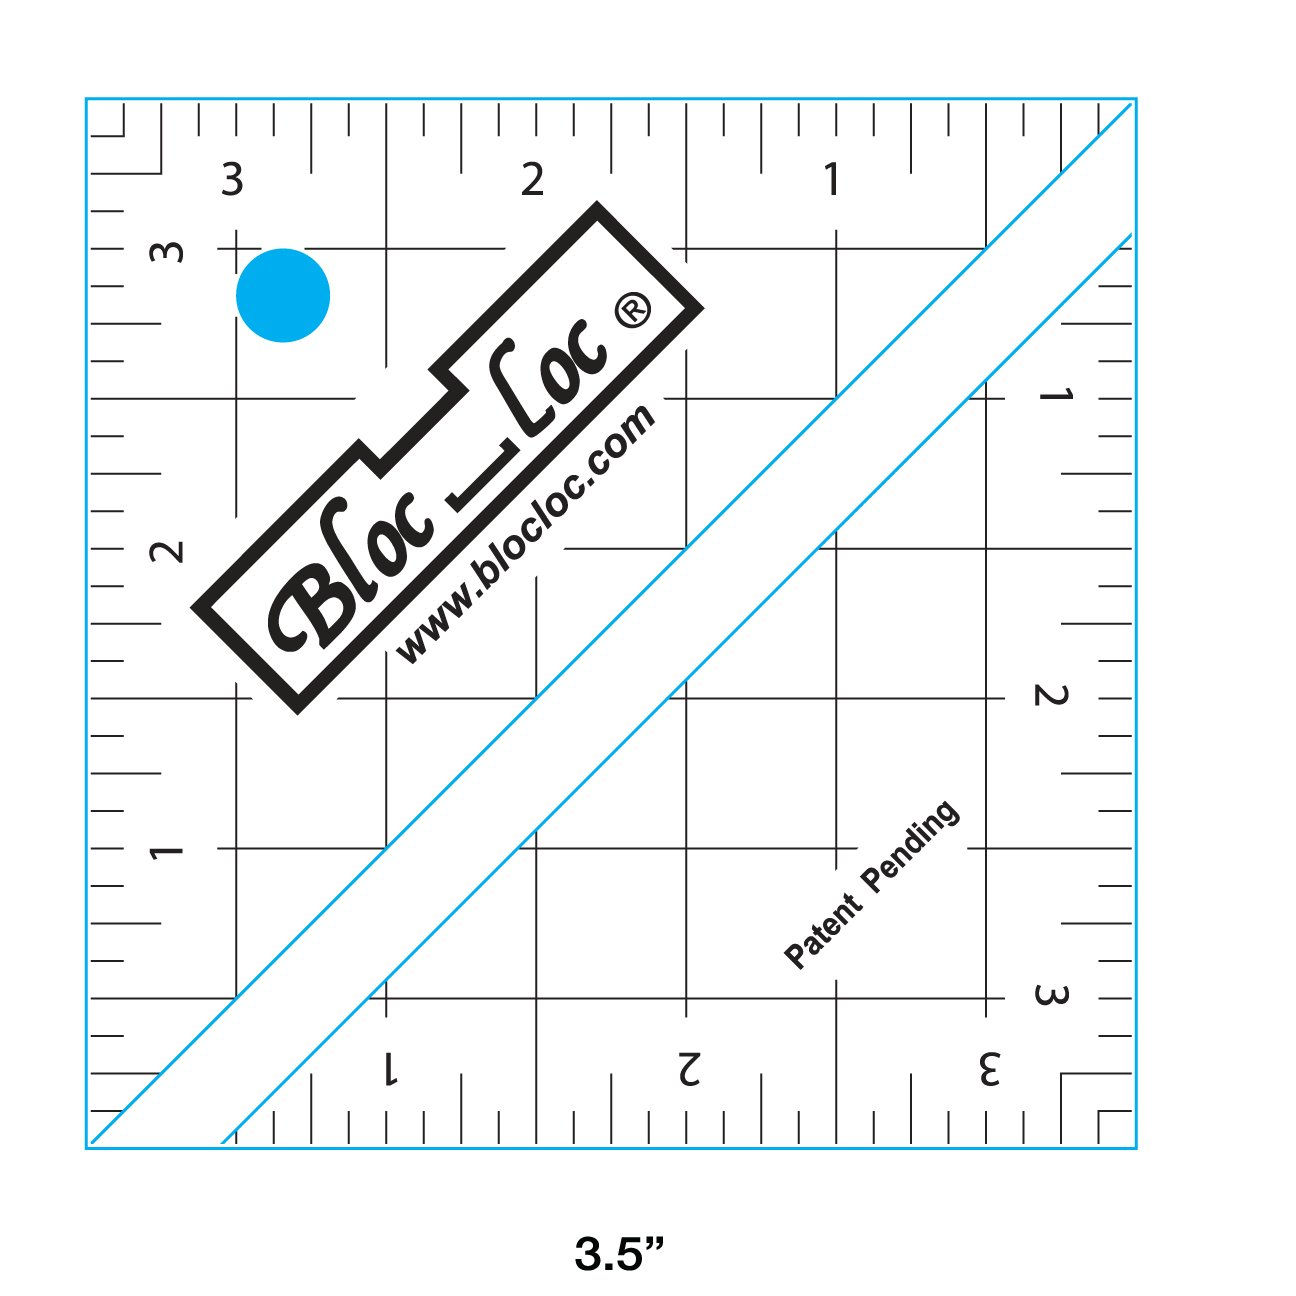 Bloc_Loc HST Square up Ruler 3.5